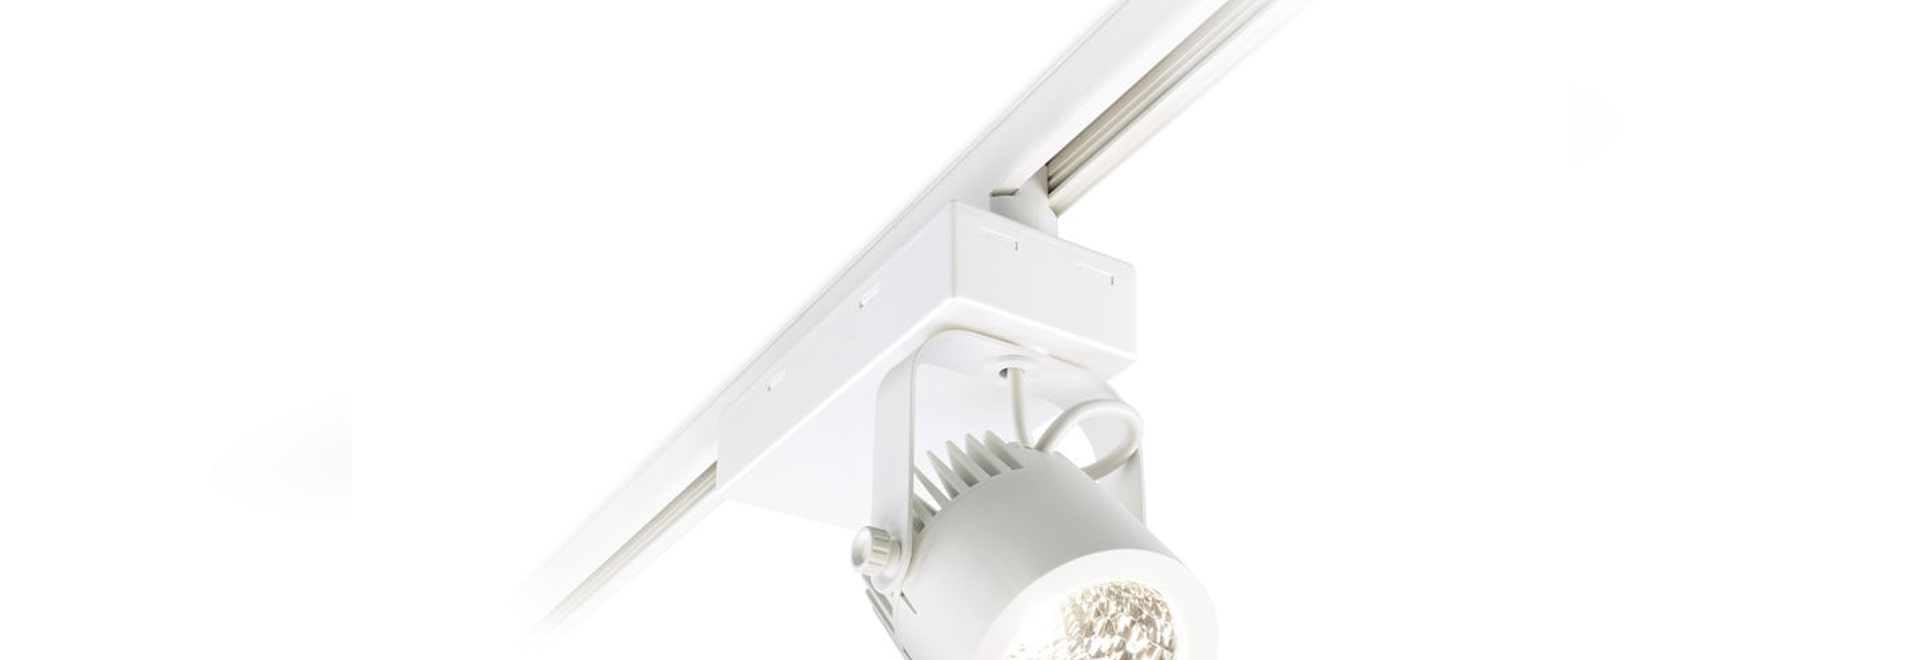 ECOSTYLE LED track light by PHILIPS LIGHTING  sc 1 st  Archiexpo Trends & ECOSTYLE LED track light by PHILIPS LIGHTING - PHILIPS LIGHTING azcodes.com